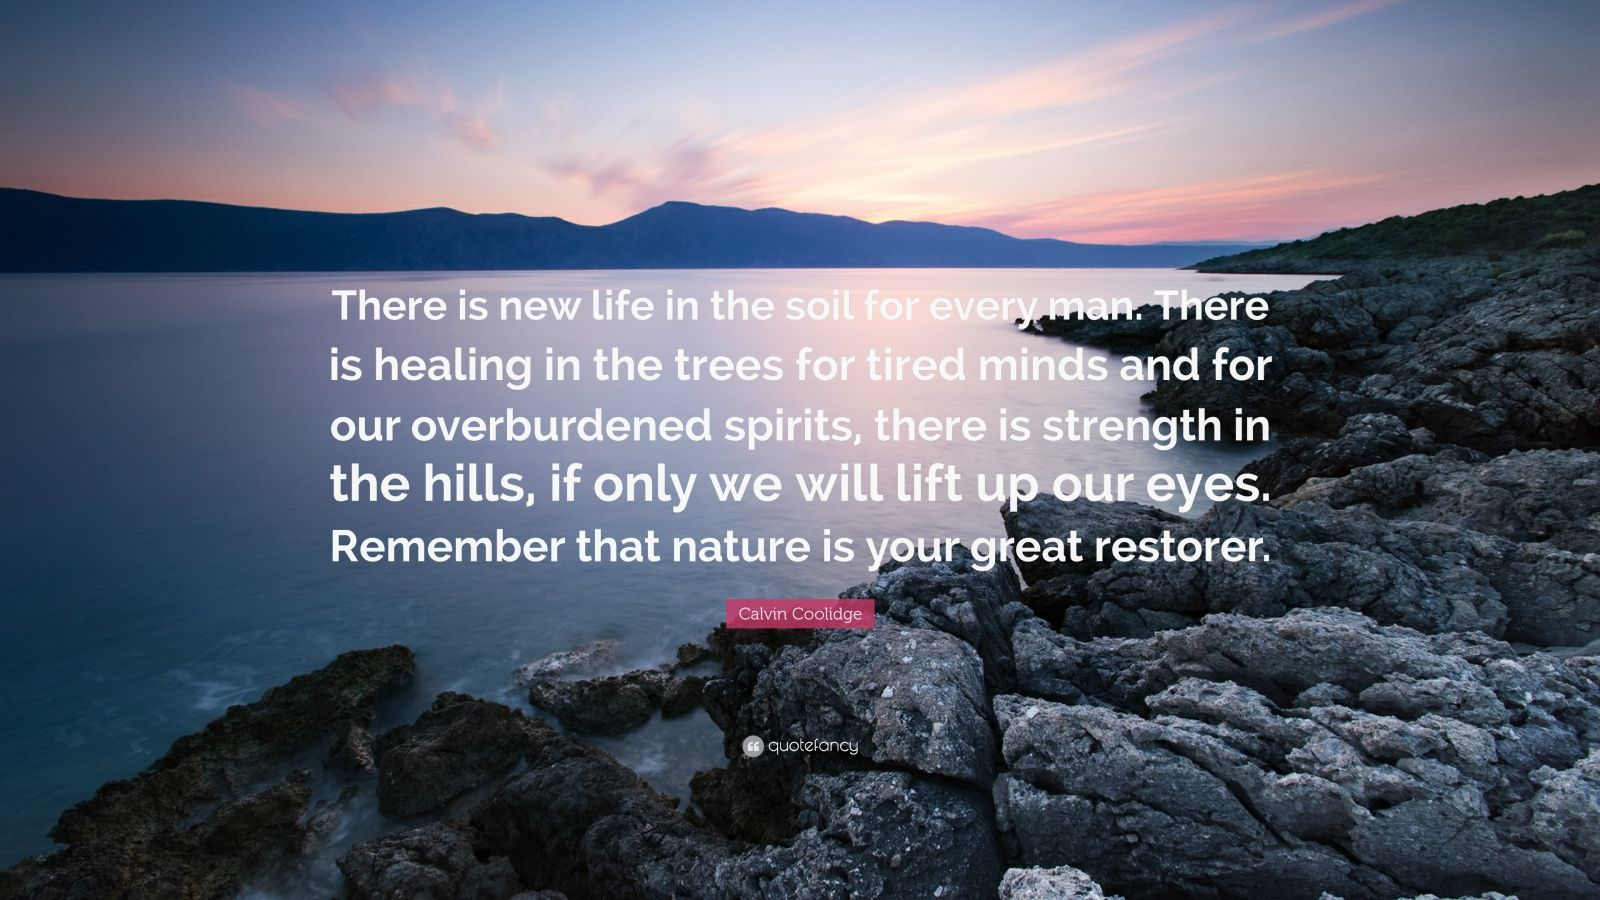 "Calvin Coolidge Quote: ""There is new life in the soil for every man. There is healing in the trees for tired minds and for our overburdened spirits, there is strength in the hills, if only we will lift up our eyes. Remember that nature is your great restorer."""